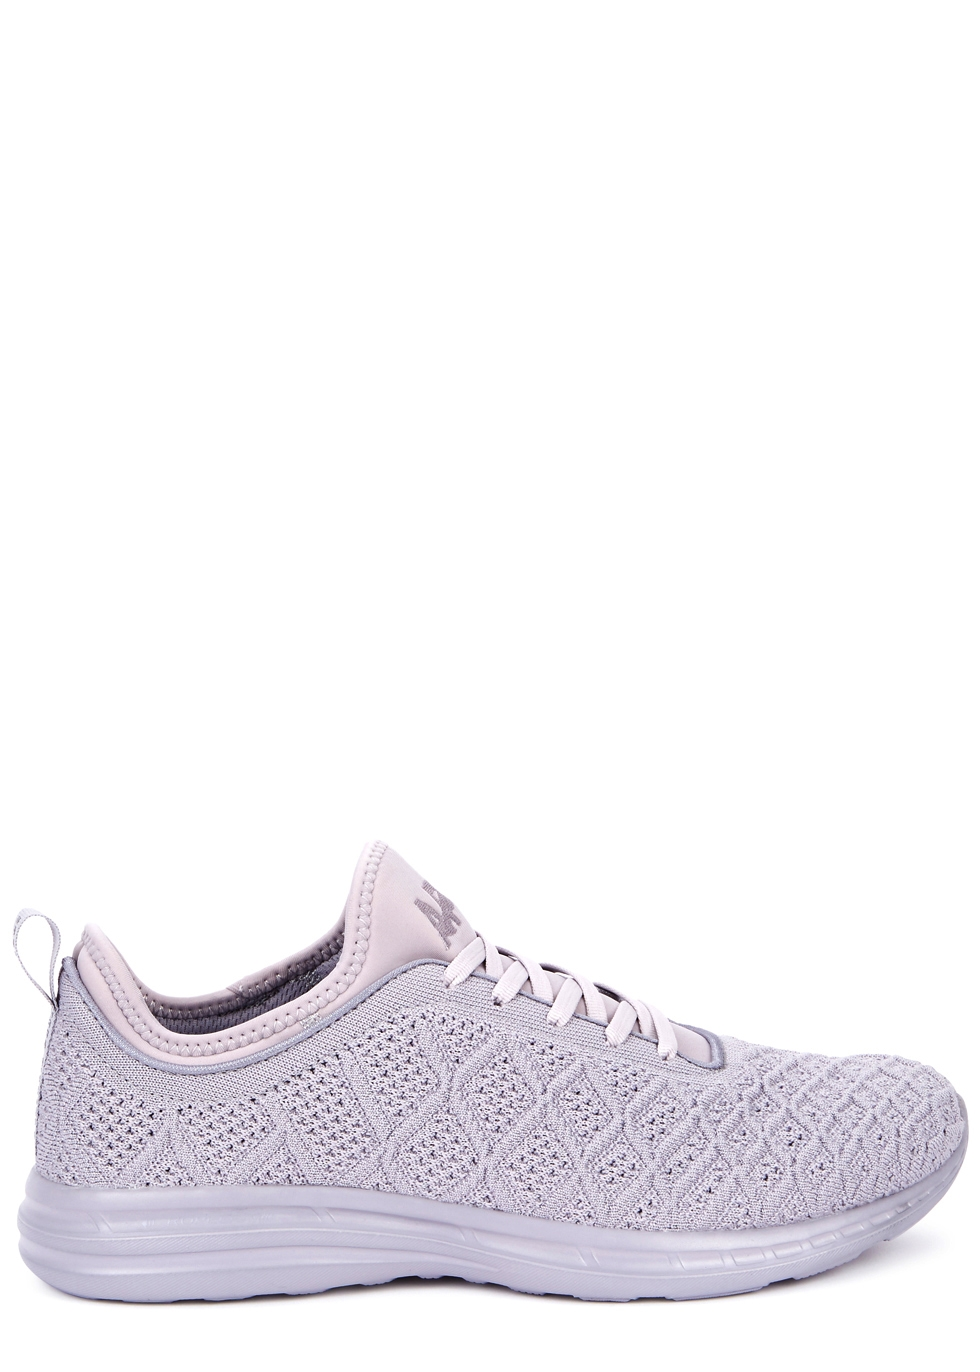 APL ATHLETIC PROPULSION LABS TECHLOOM PHANTOM LILAC KNITTED TRAINERS